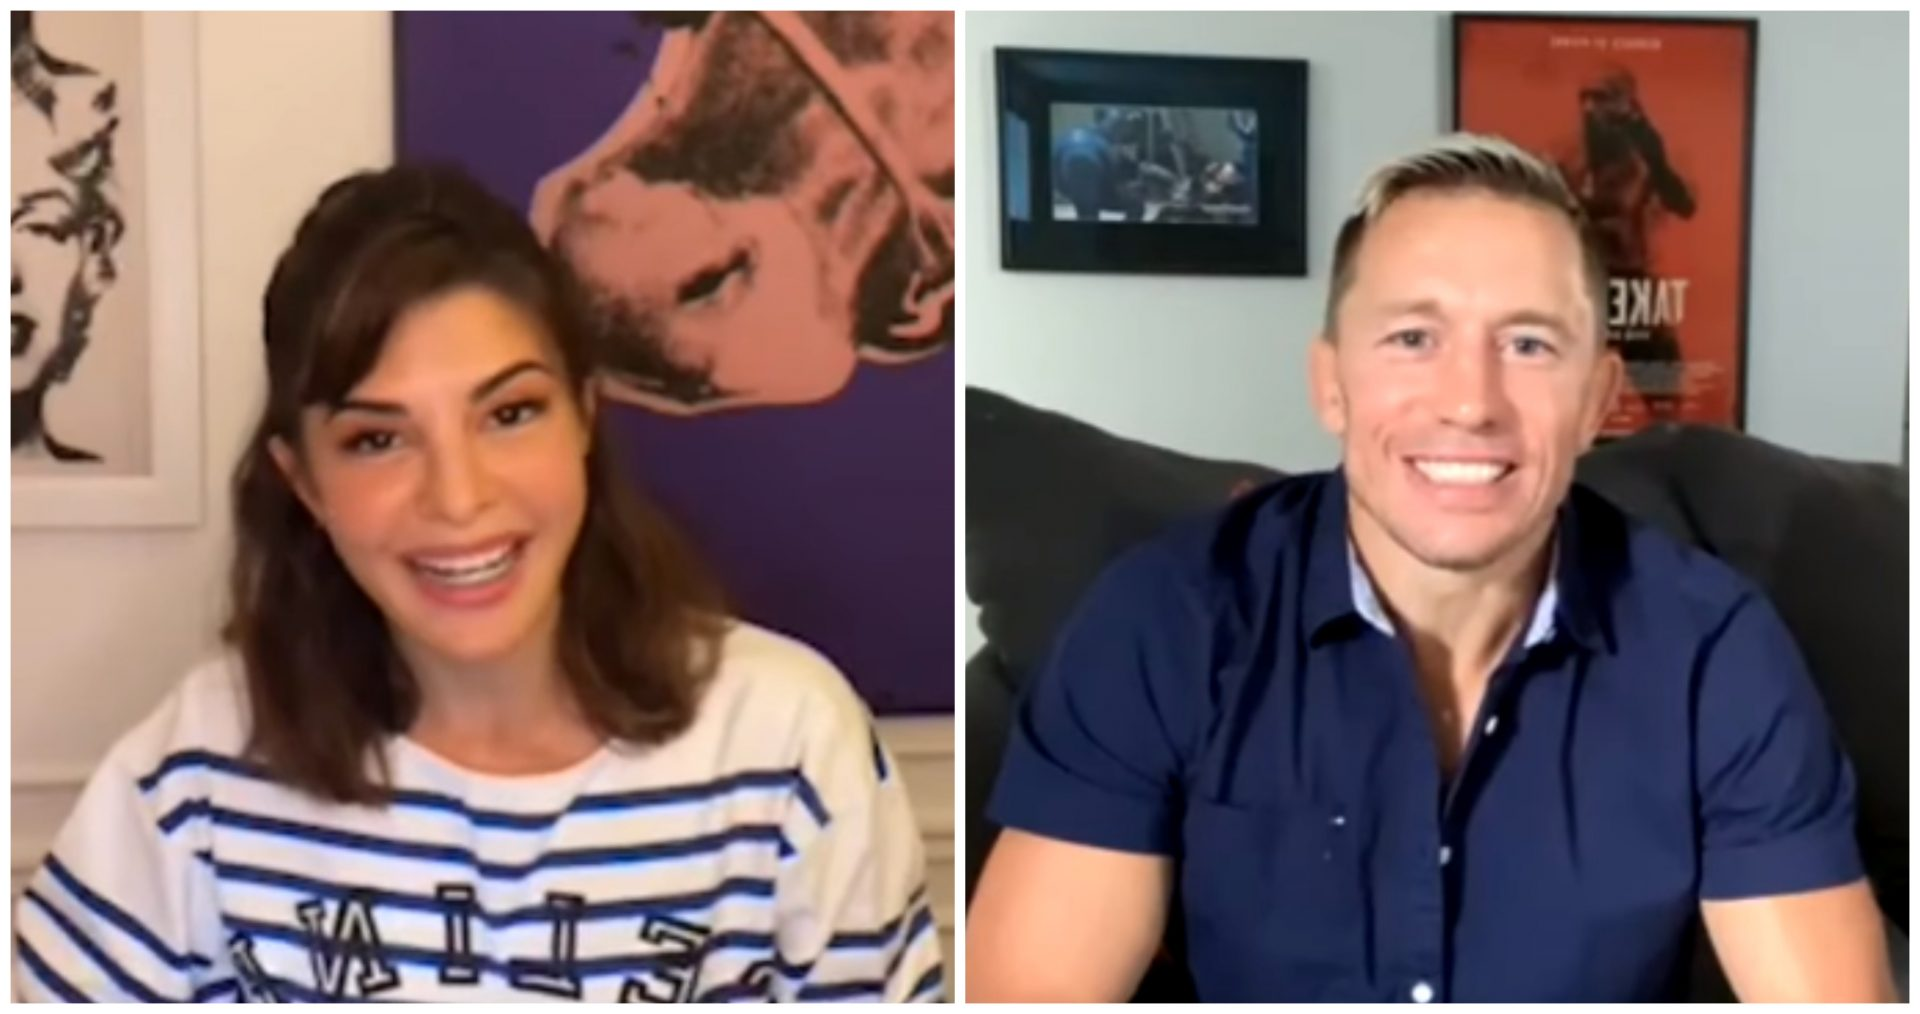 MMA legend Georges St-Pierre discusses his self-defense programme and meditation techniques to Bollywood icon Jacqueline Fernandez - Georges St-Pierre